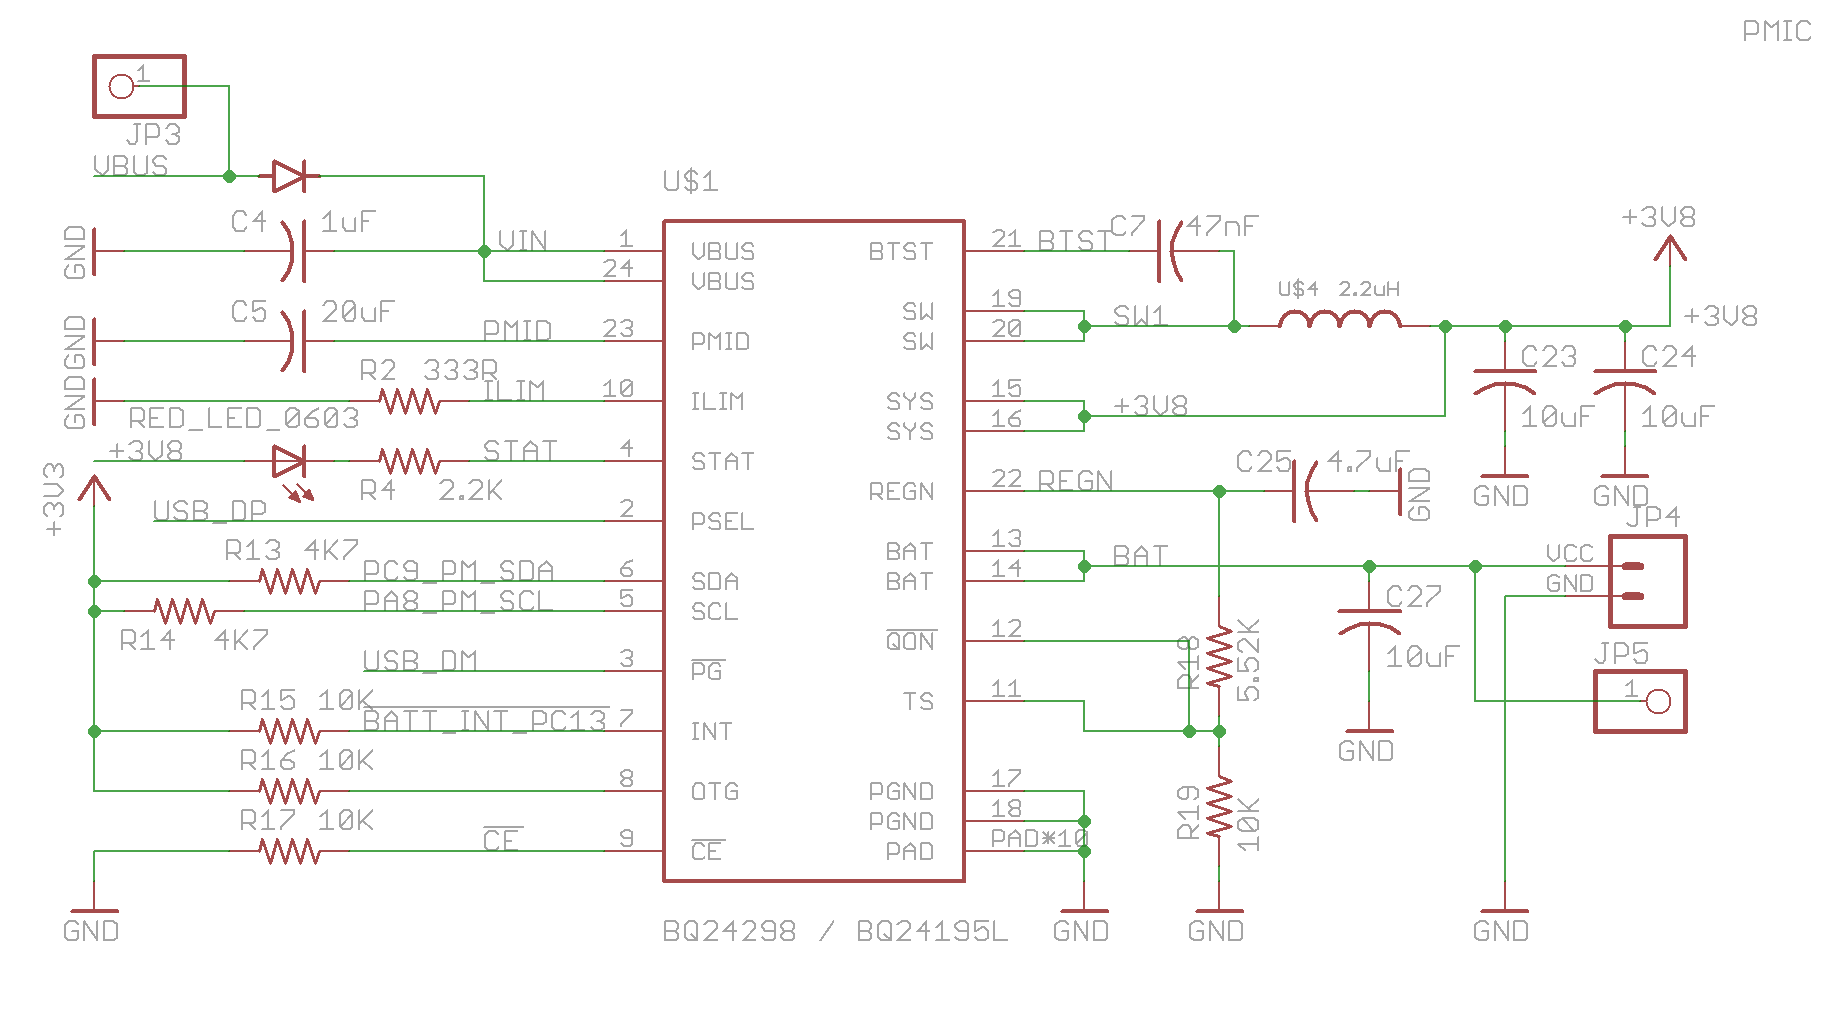 CCS/BQ24195L: BQ24195L for GSM application without using the